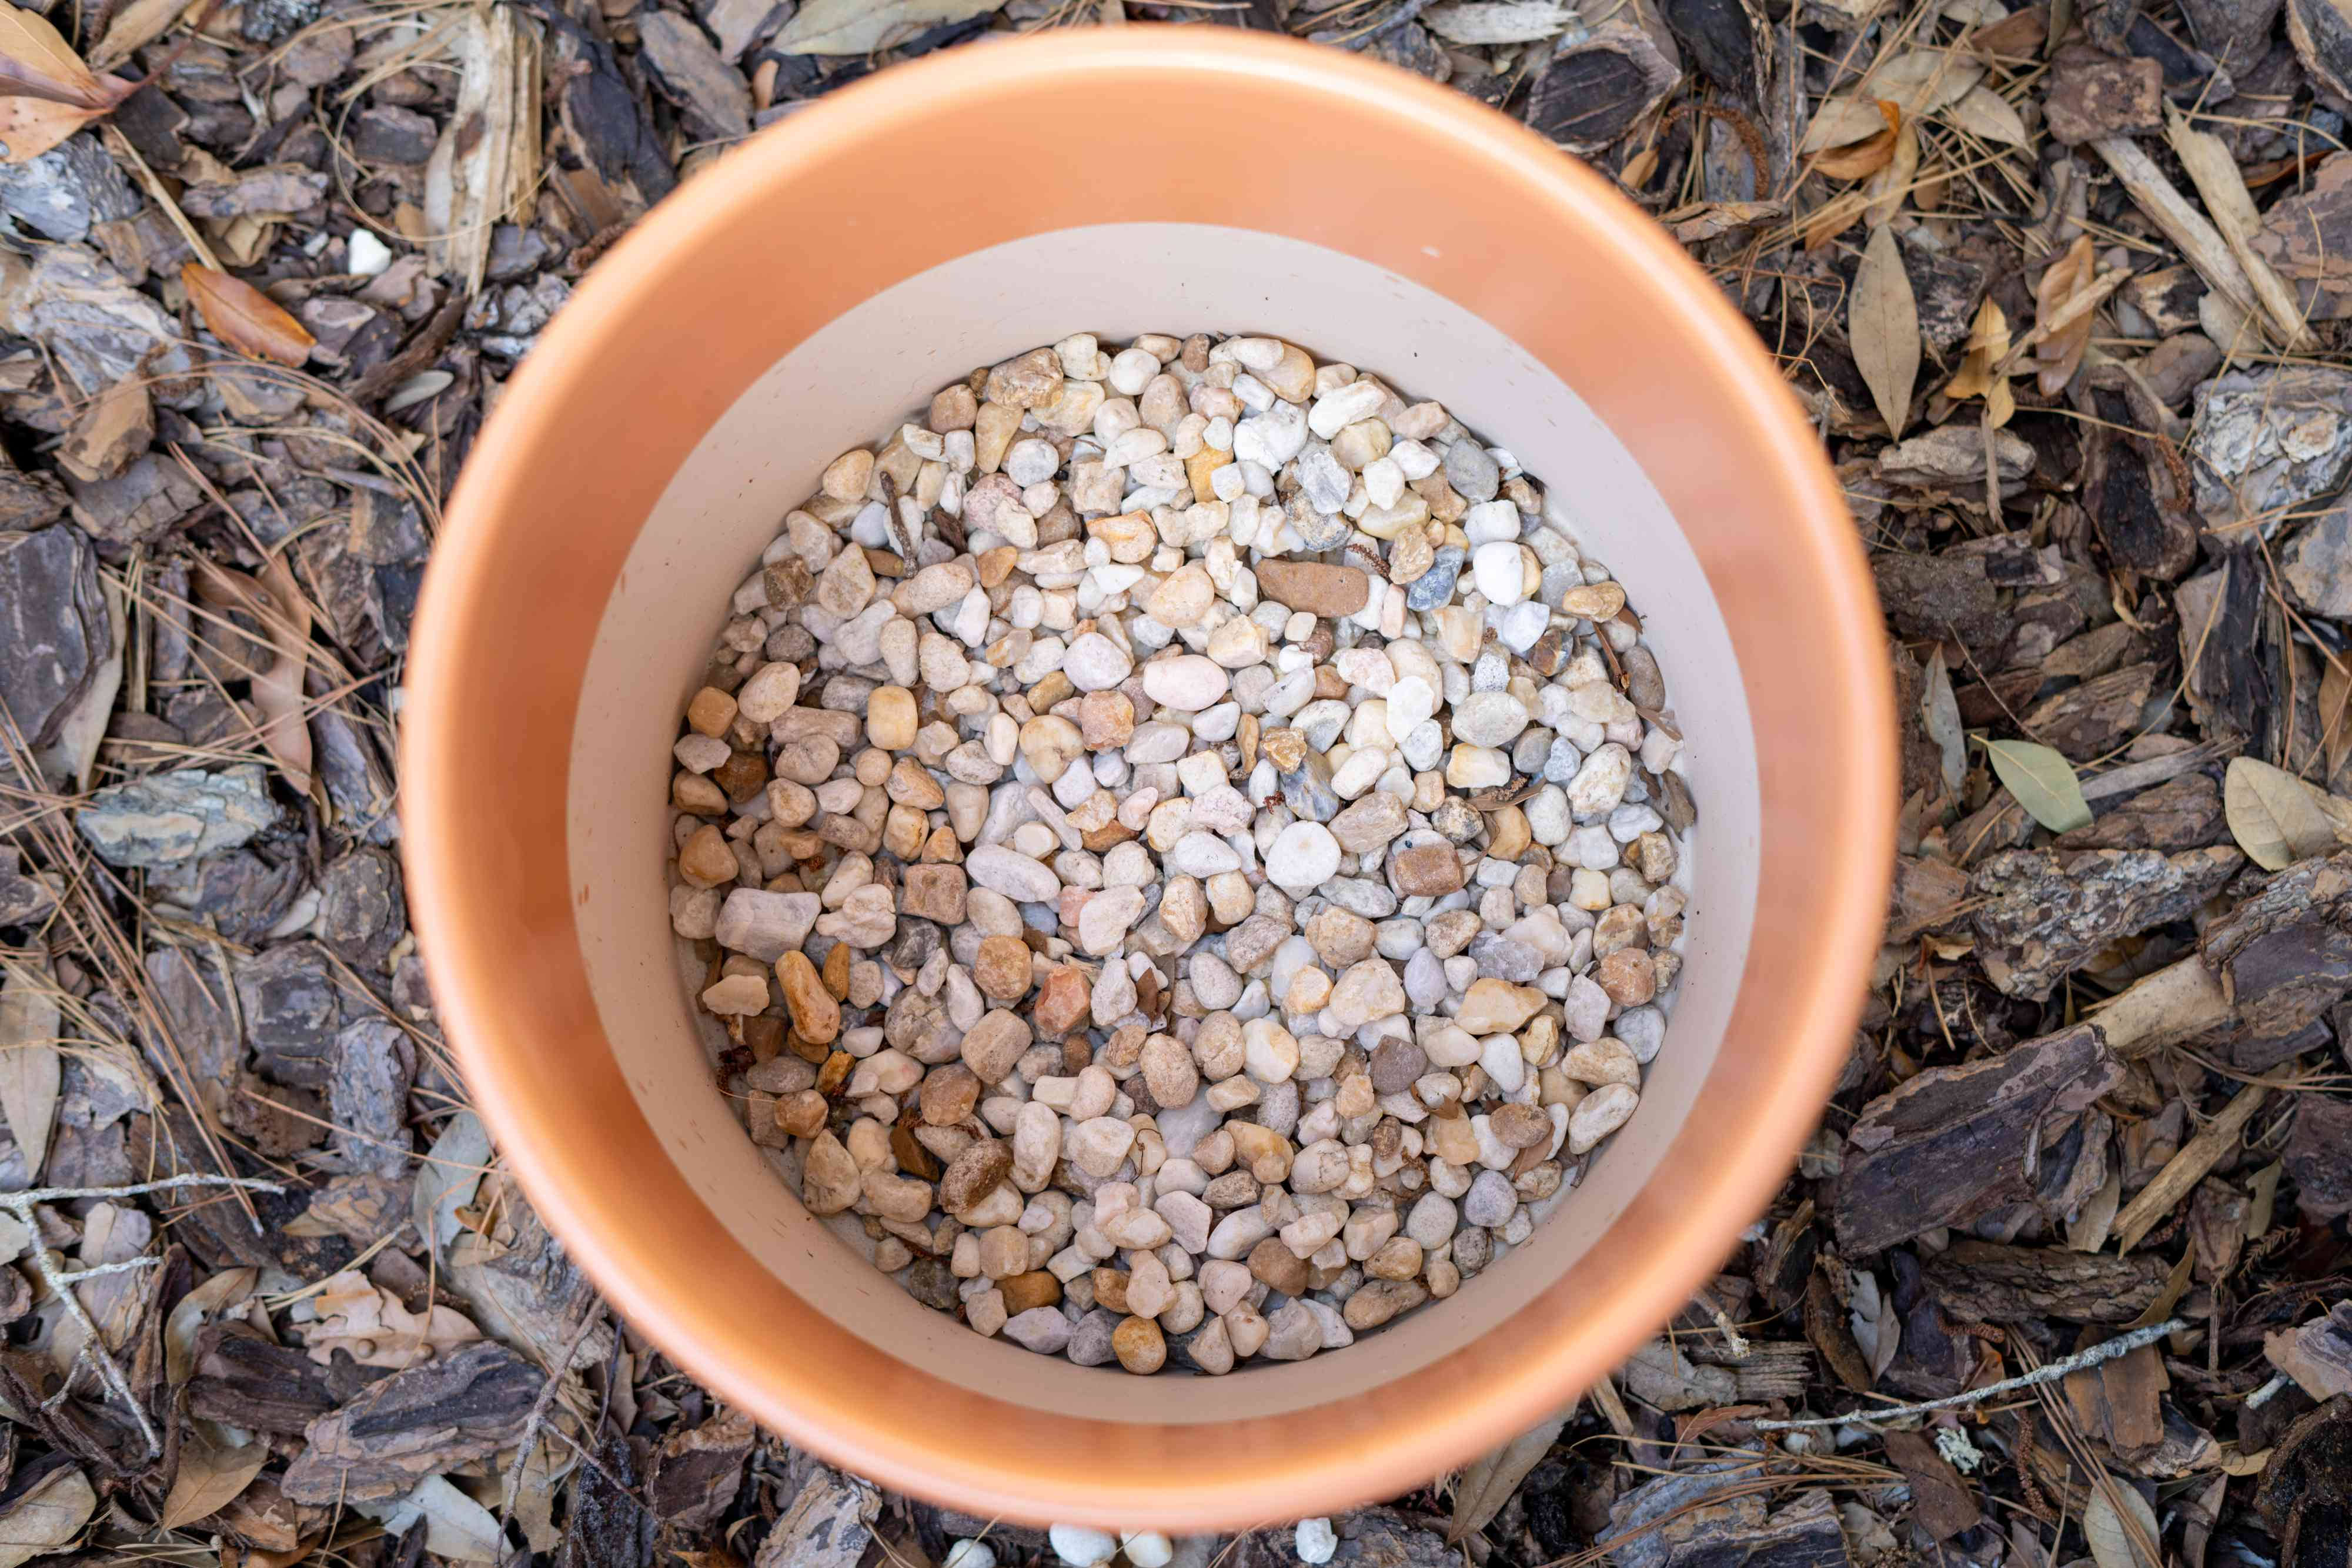 Ceramic pot with small pebbles to help with drainage for potted magnolia